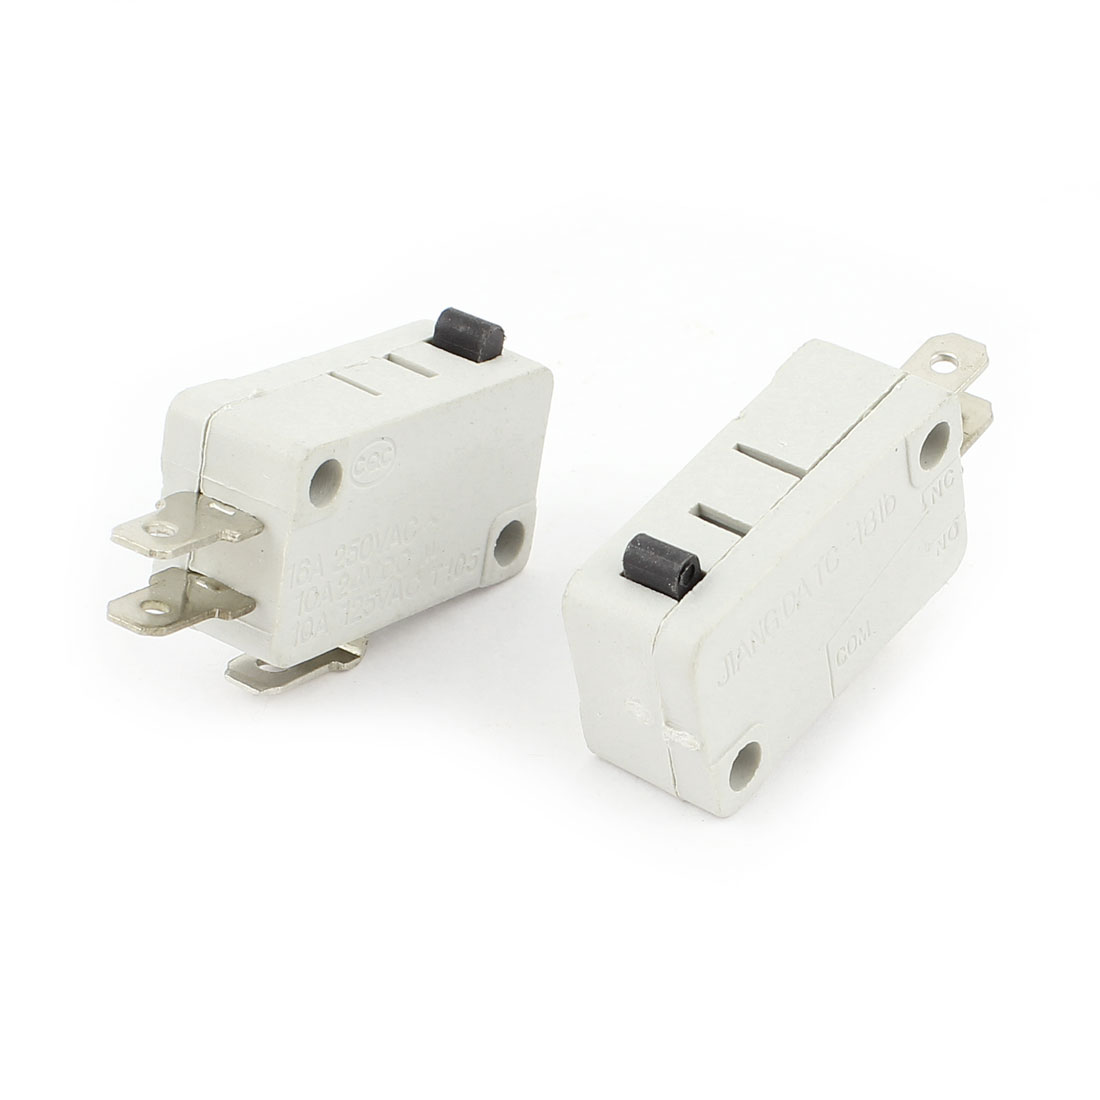 250VAC 16A SPDT 1NO 1NC 3P Momentary Pushbutton Limit Microswitch 2pcs